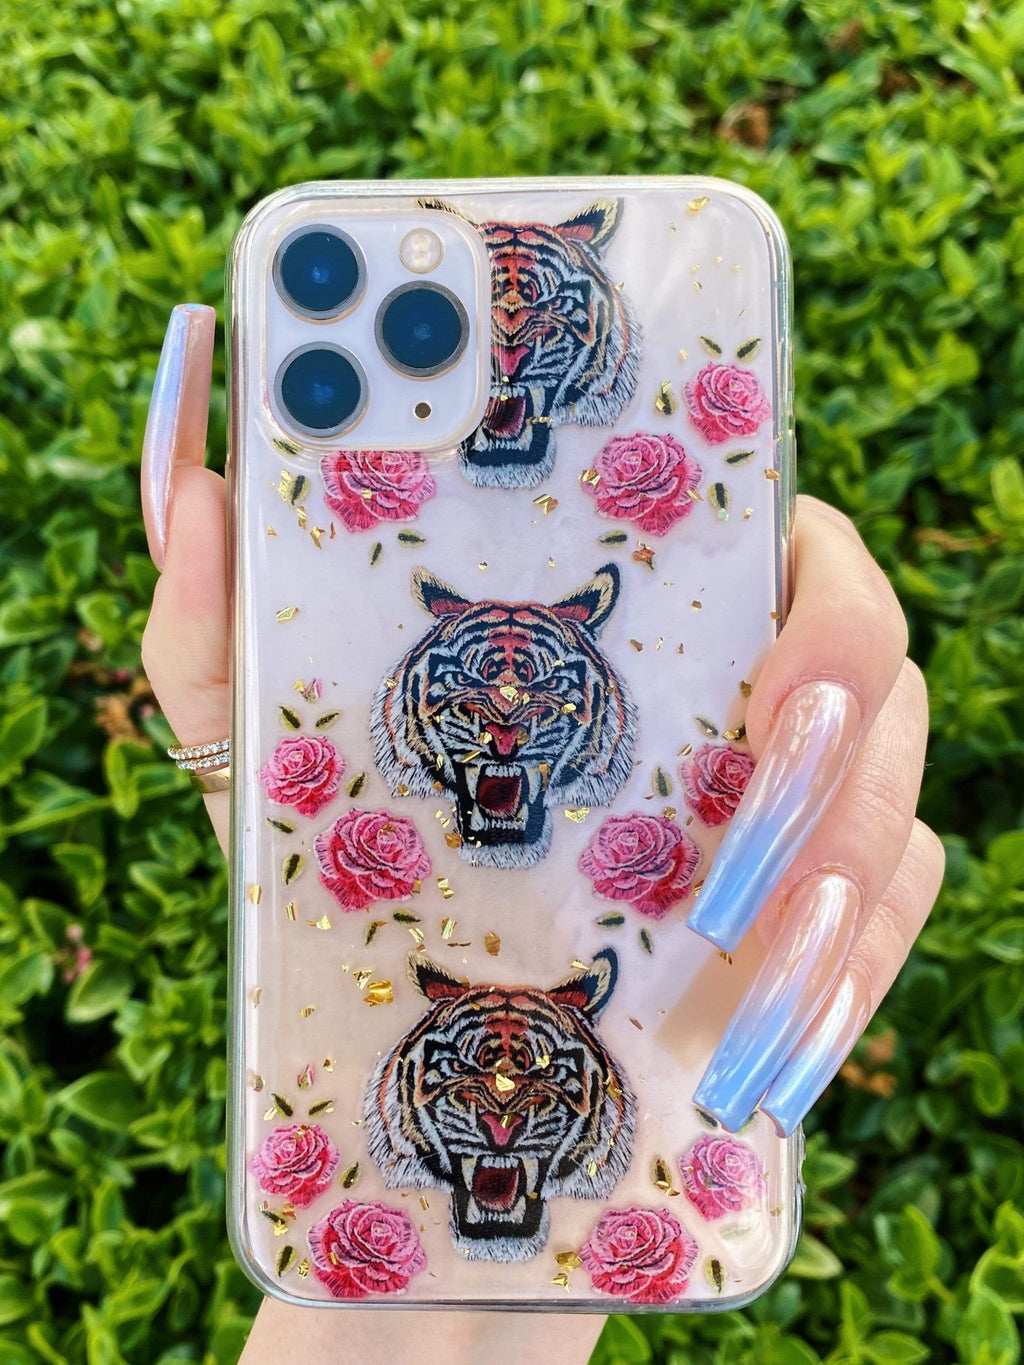 Tiger iPhone Case - dripcreation